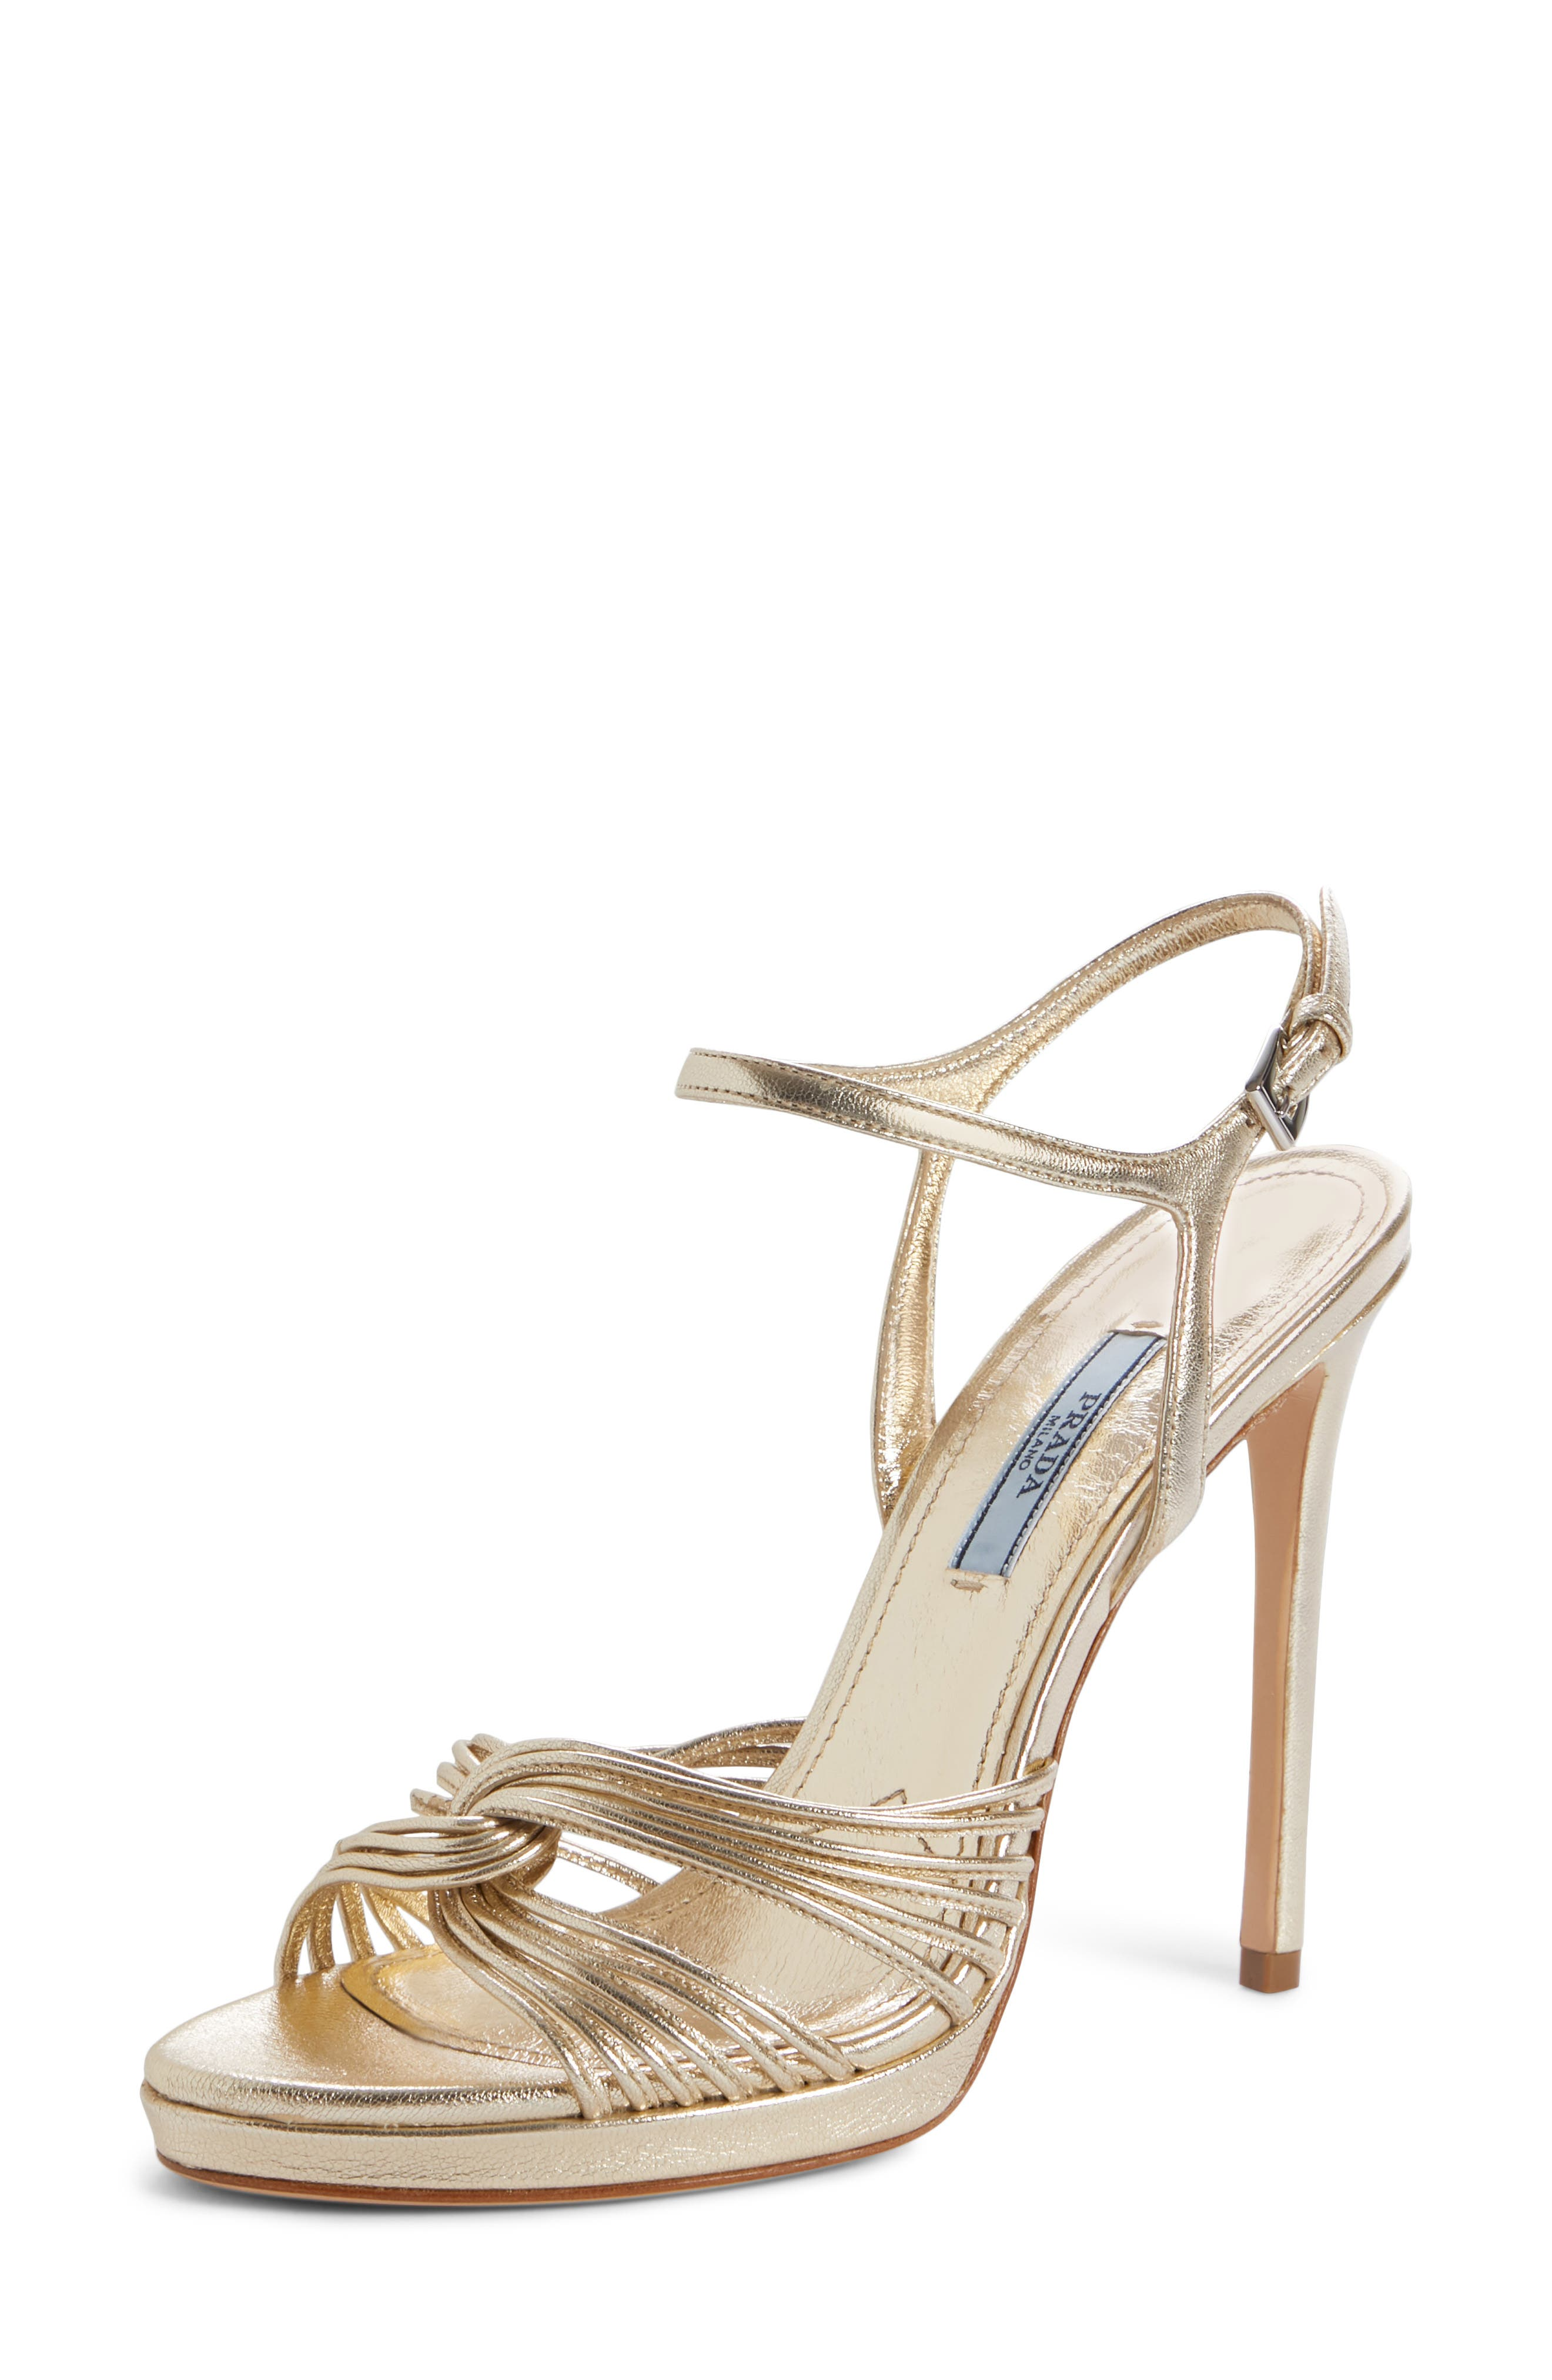 Roping Ankle Strap Sandal, Main, color, PIRITE LEATHER